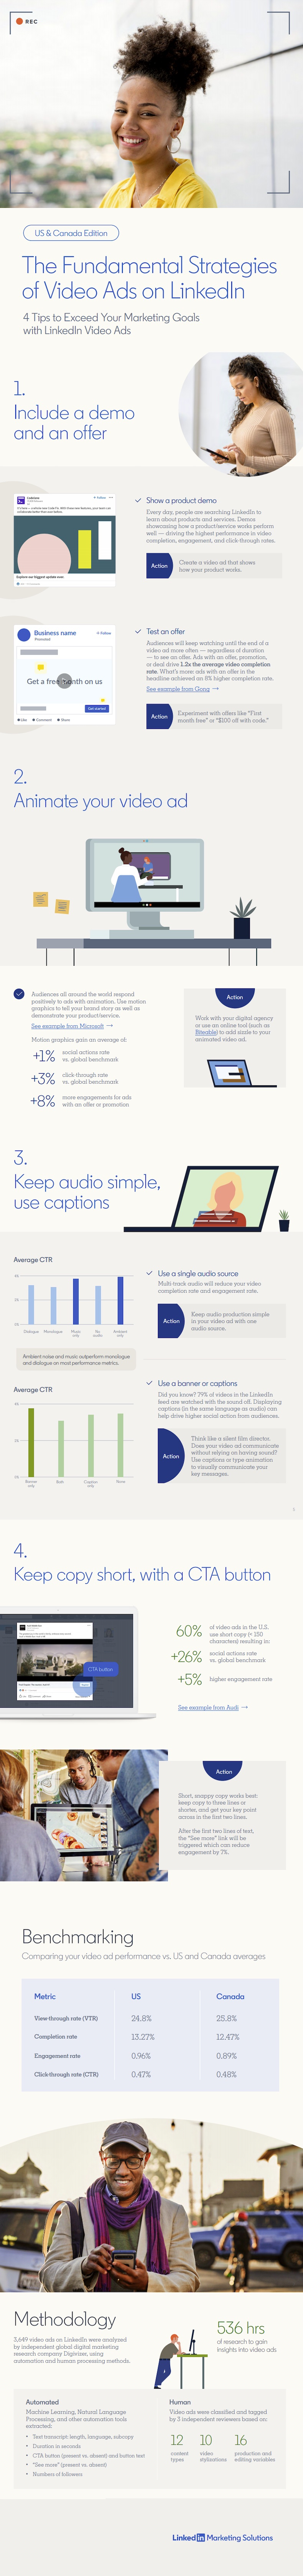 Four Tips for Better Videos Ads on LinkedIn [Infographic]